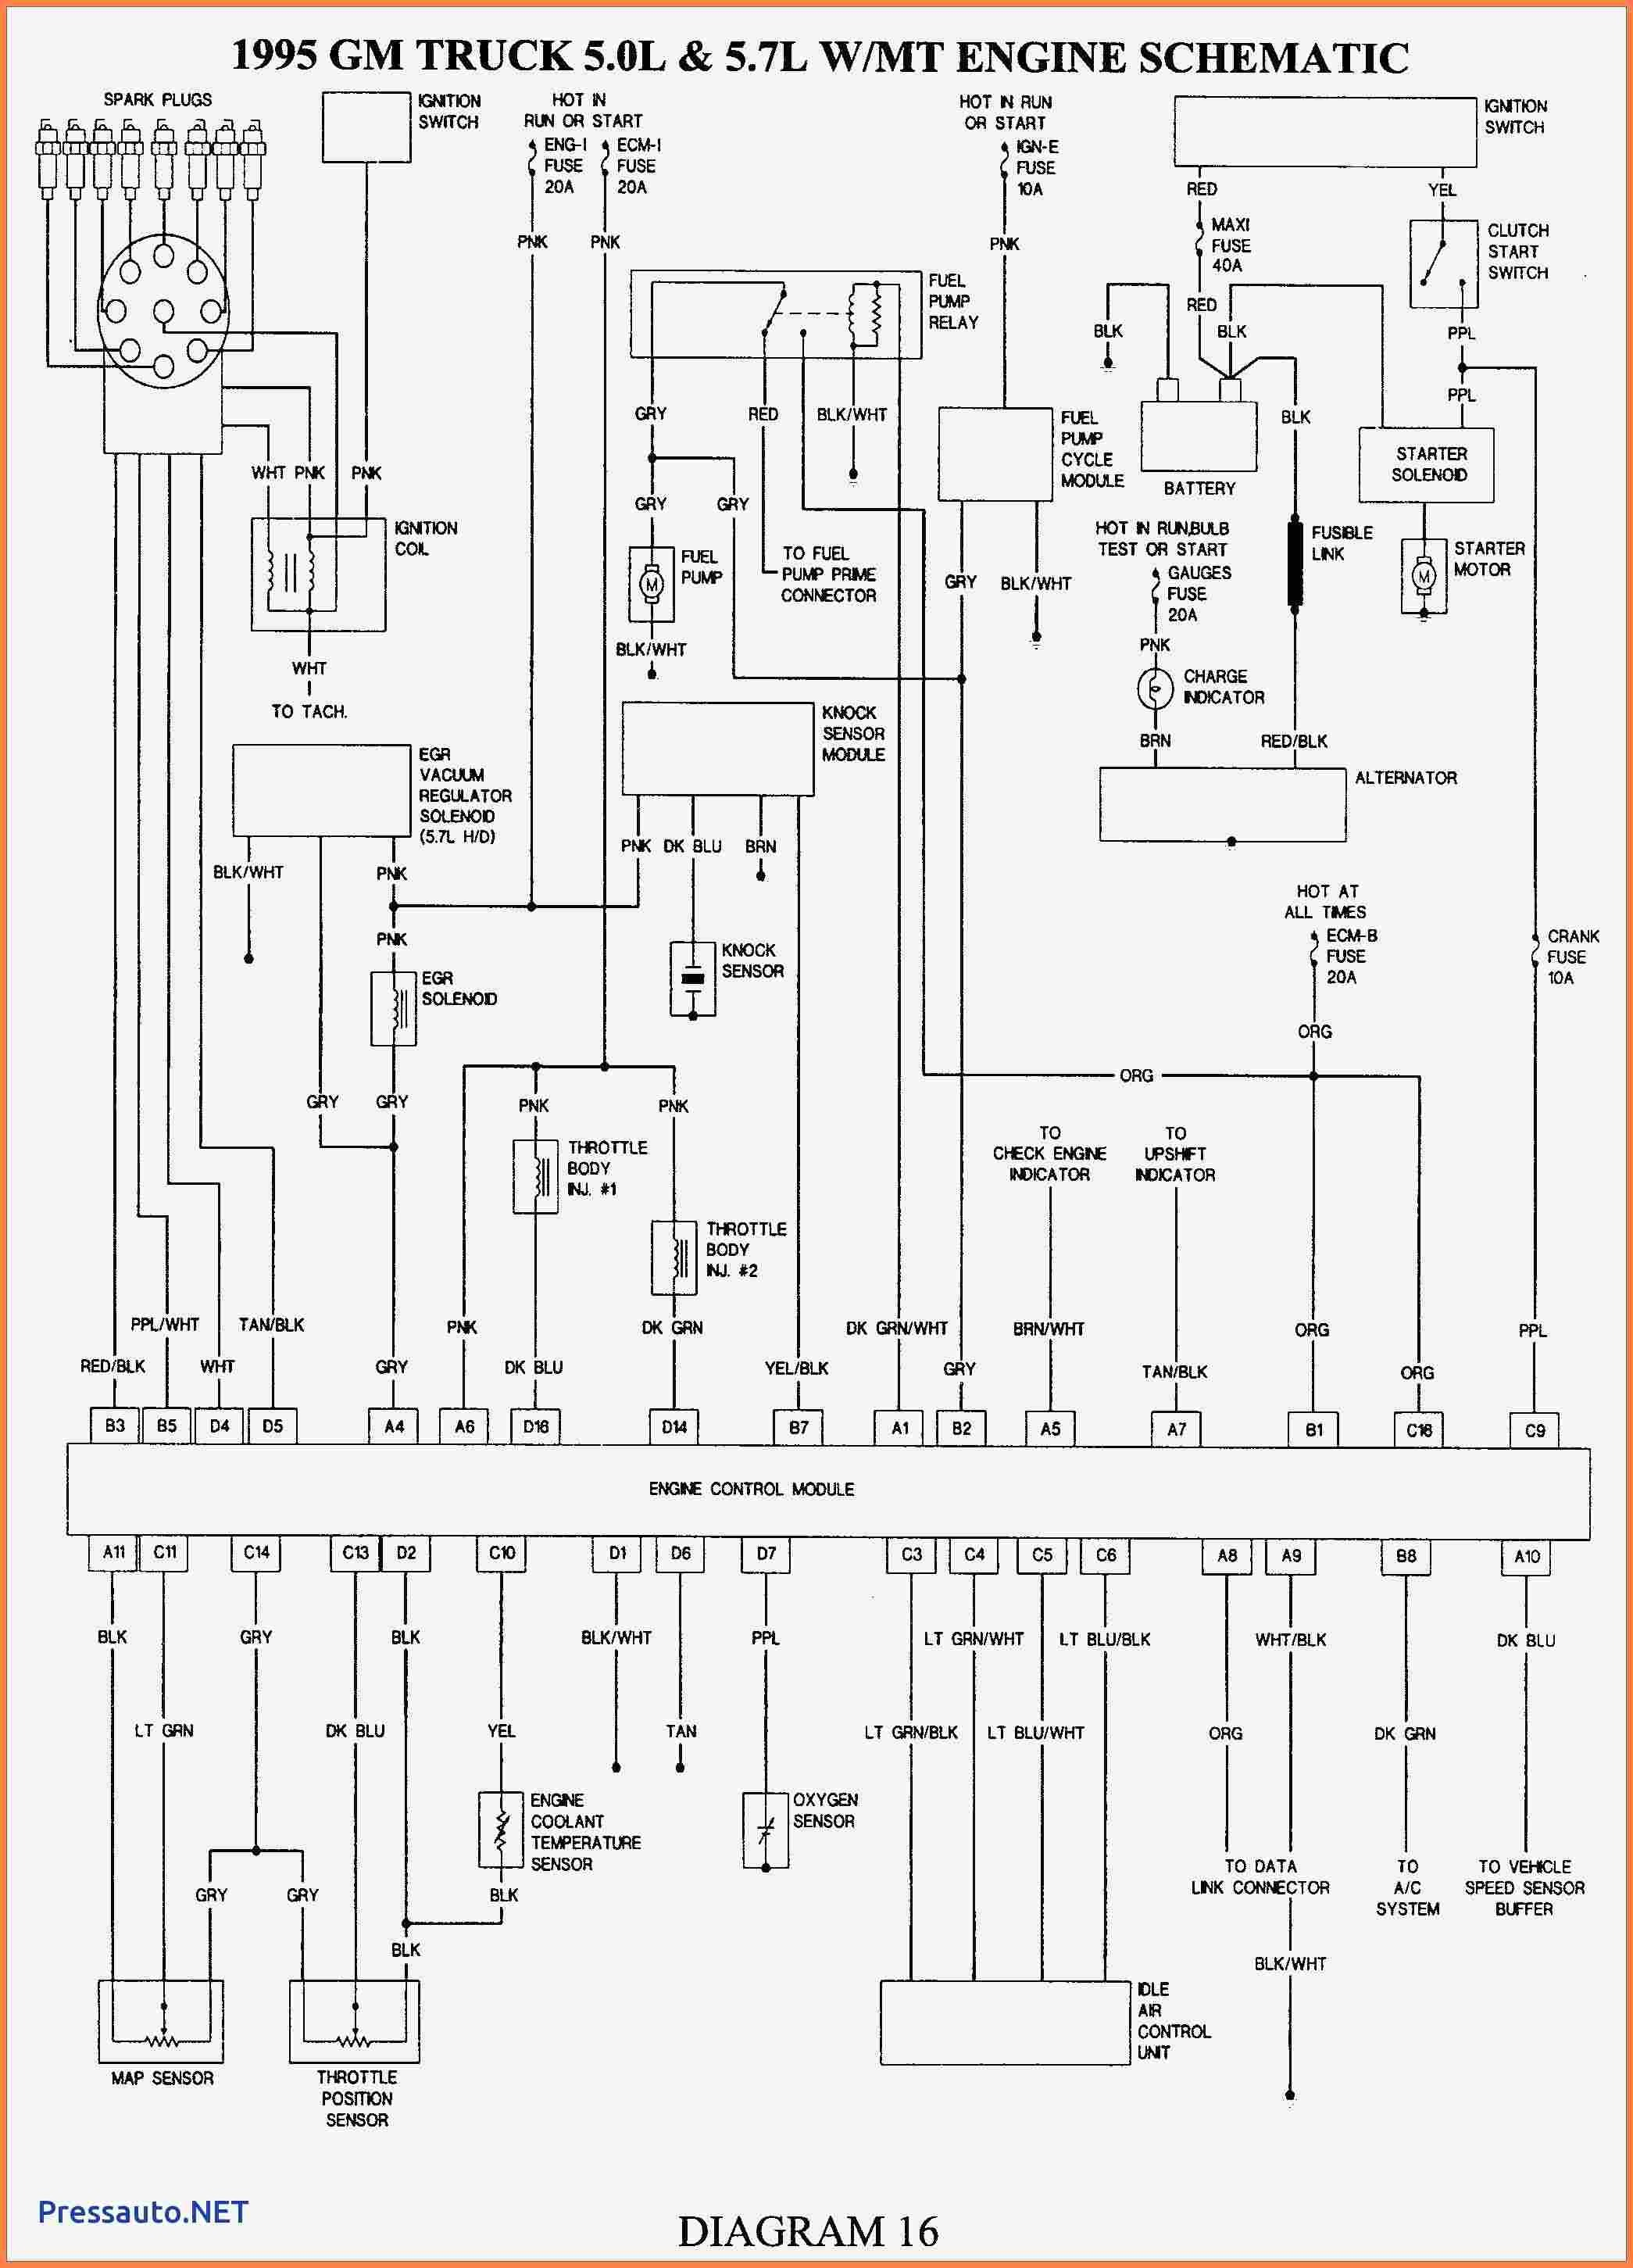 2008 Chevy Express Wiring Diagrams 3 1l Engine Fuel Flow Diagram Wiring Diagram Schematics